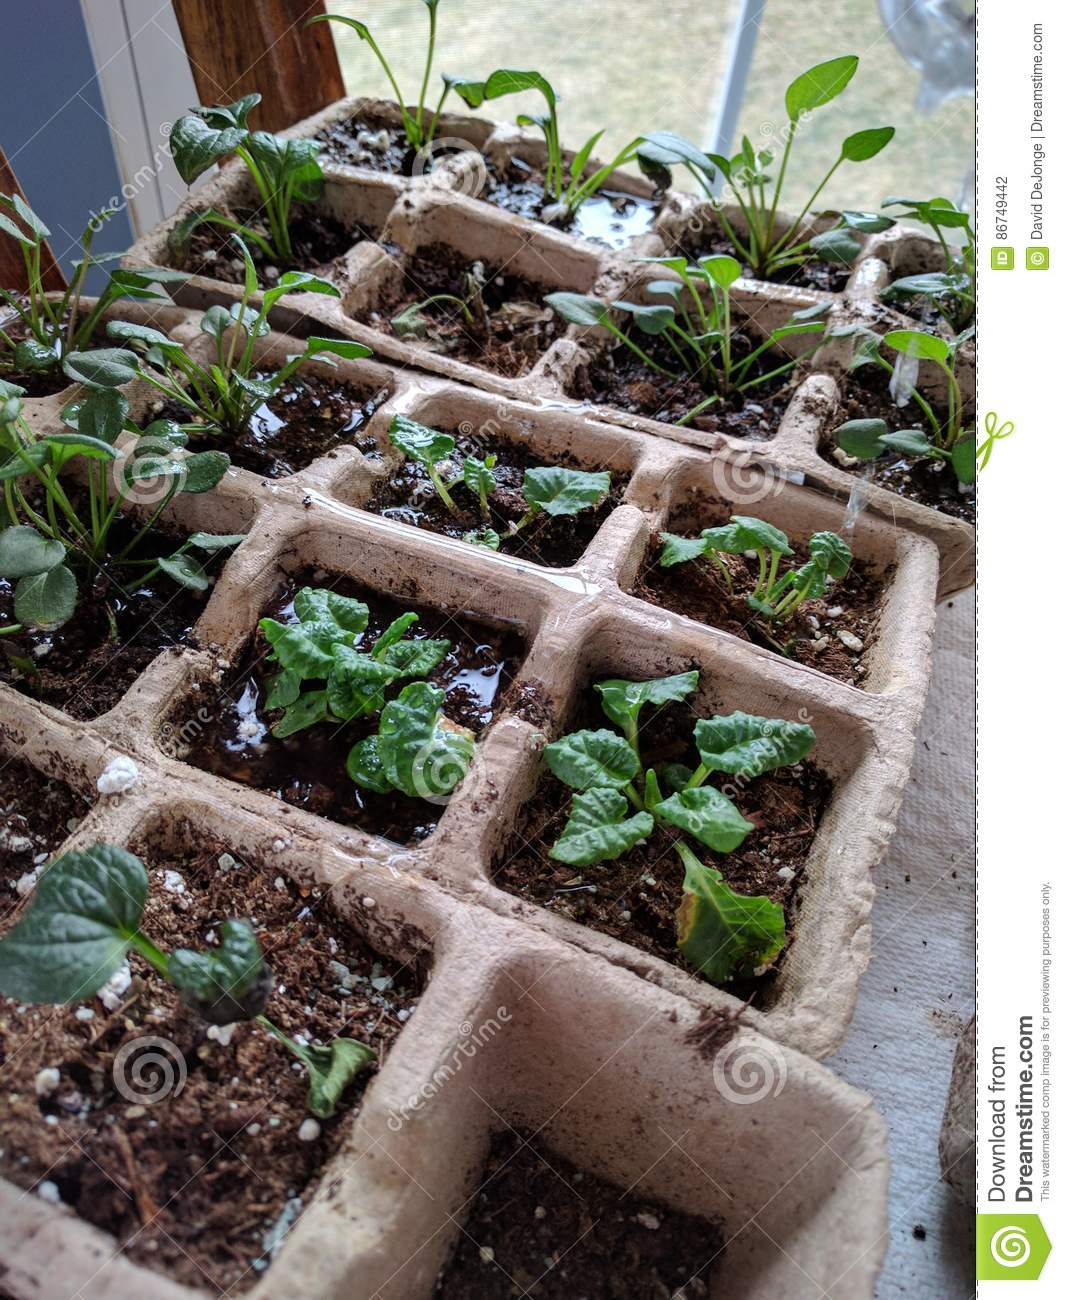 Starting your garden indoors seedlings emerge in starter pots starting your garden indoors seedlings emerge in starter pots workwithnaturefo